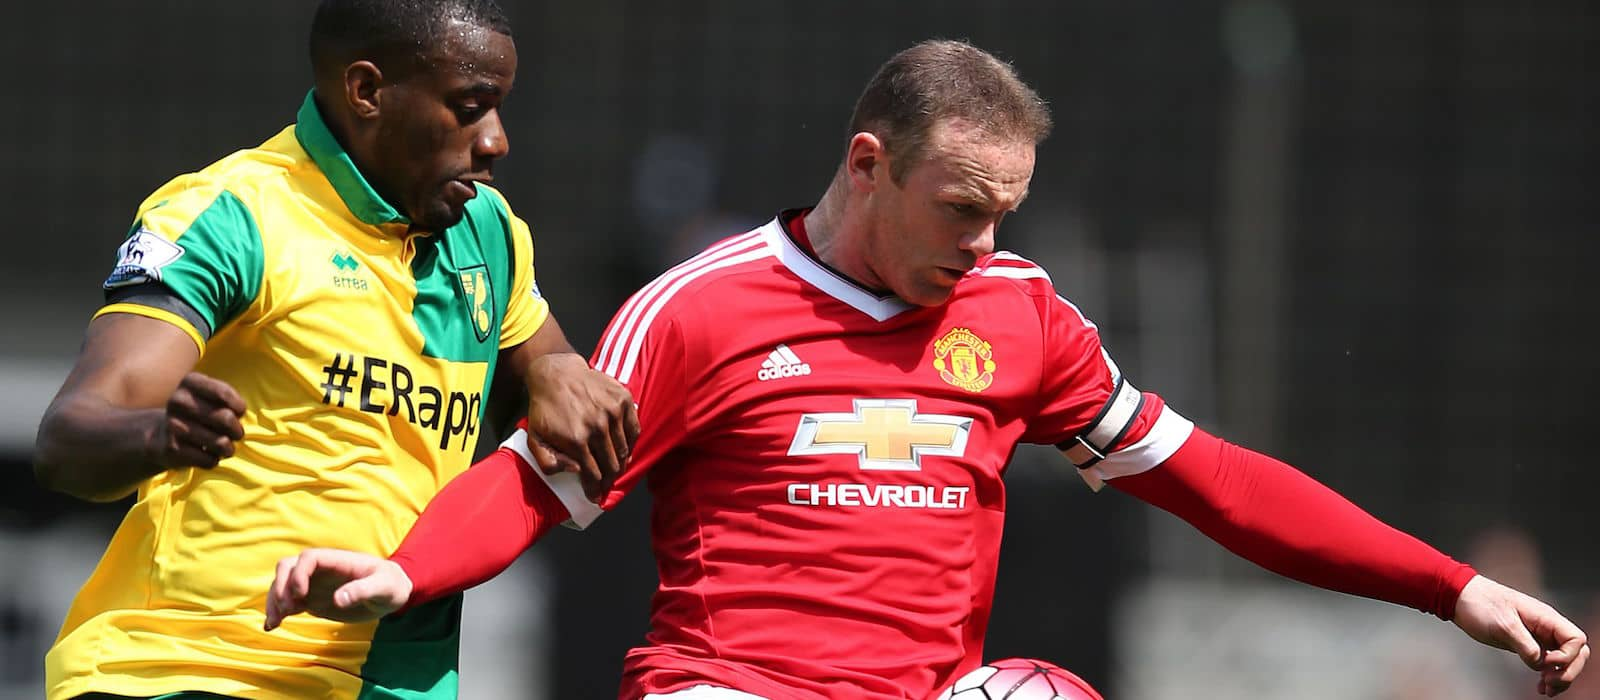 Norwich City 0-1 Manchester United: Juan Mata rescues dismal United